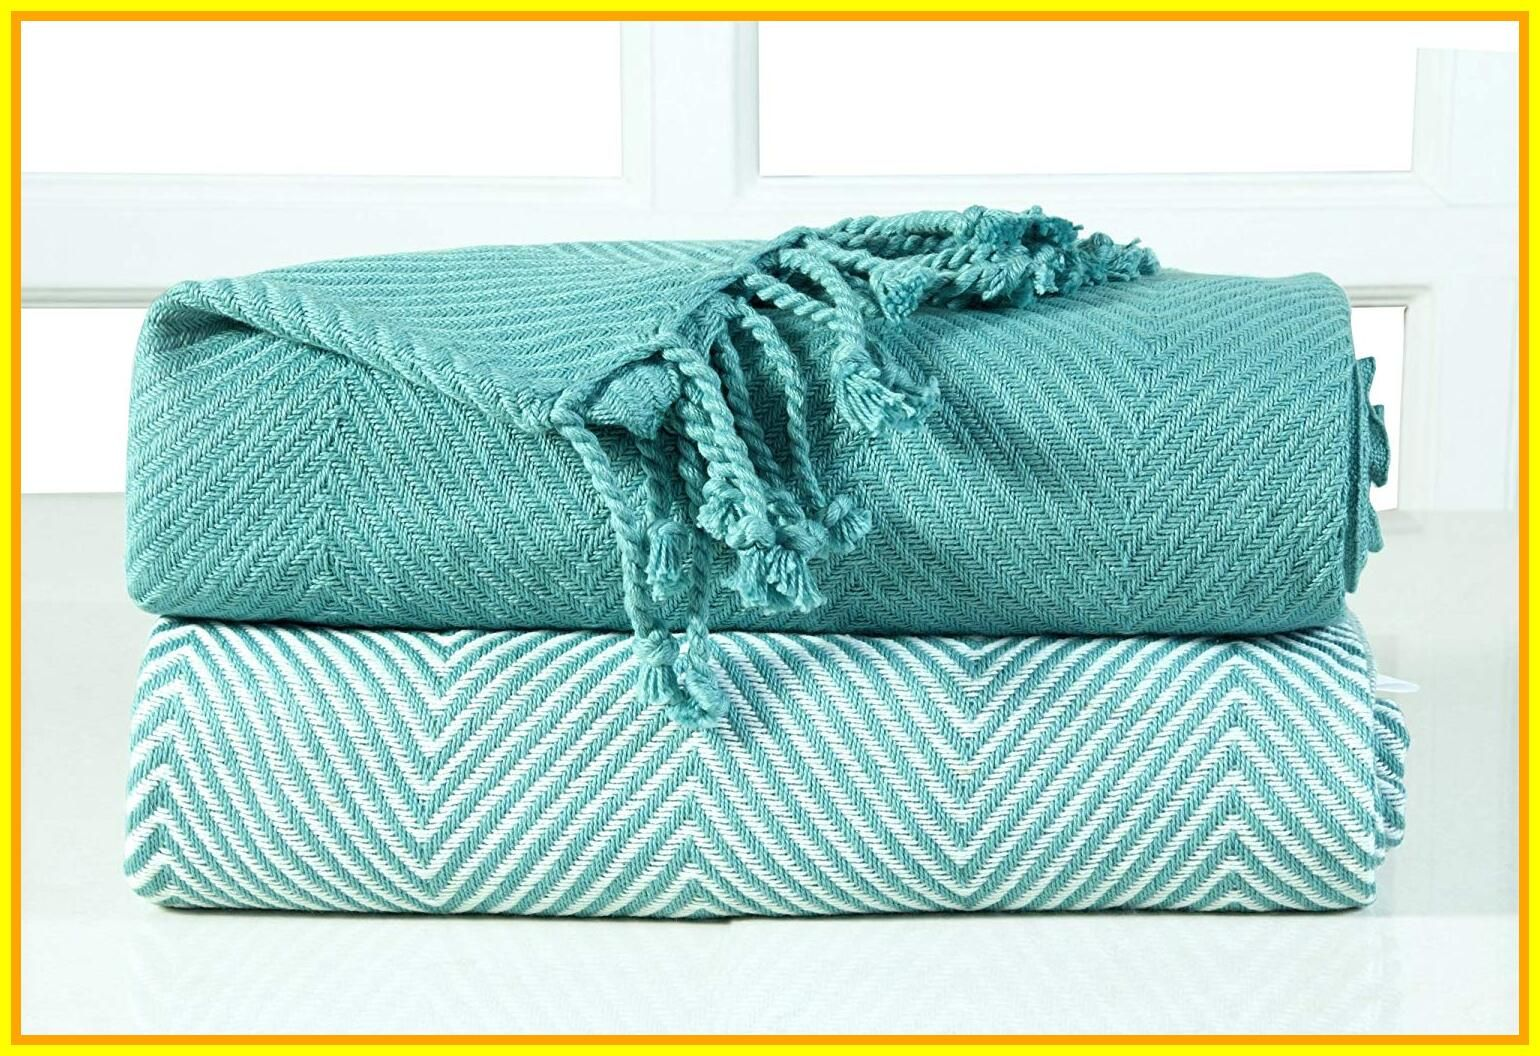 70 amazon couch cover blanket #amazon #couch #cover #blanket Please Click Link To Find More Reference,,, ENJOY!!